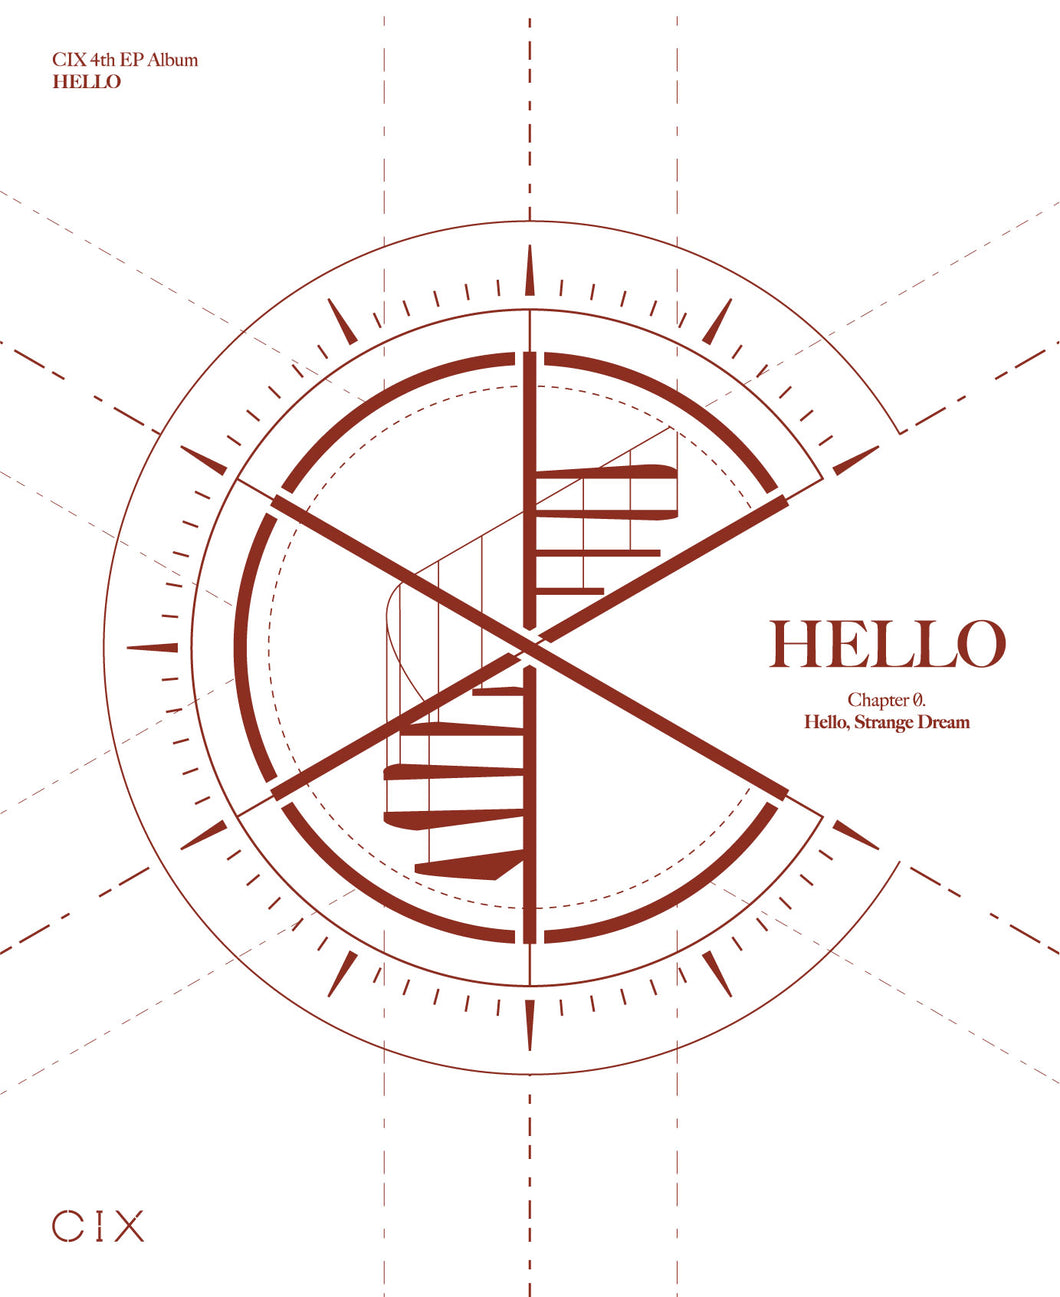 CIX - HELLO Chapter Ø. Hello, Strange Dream [4th EP Album] (Random Ver.)